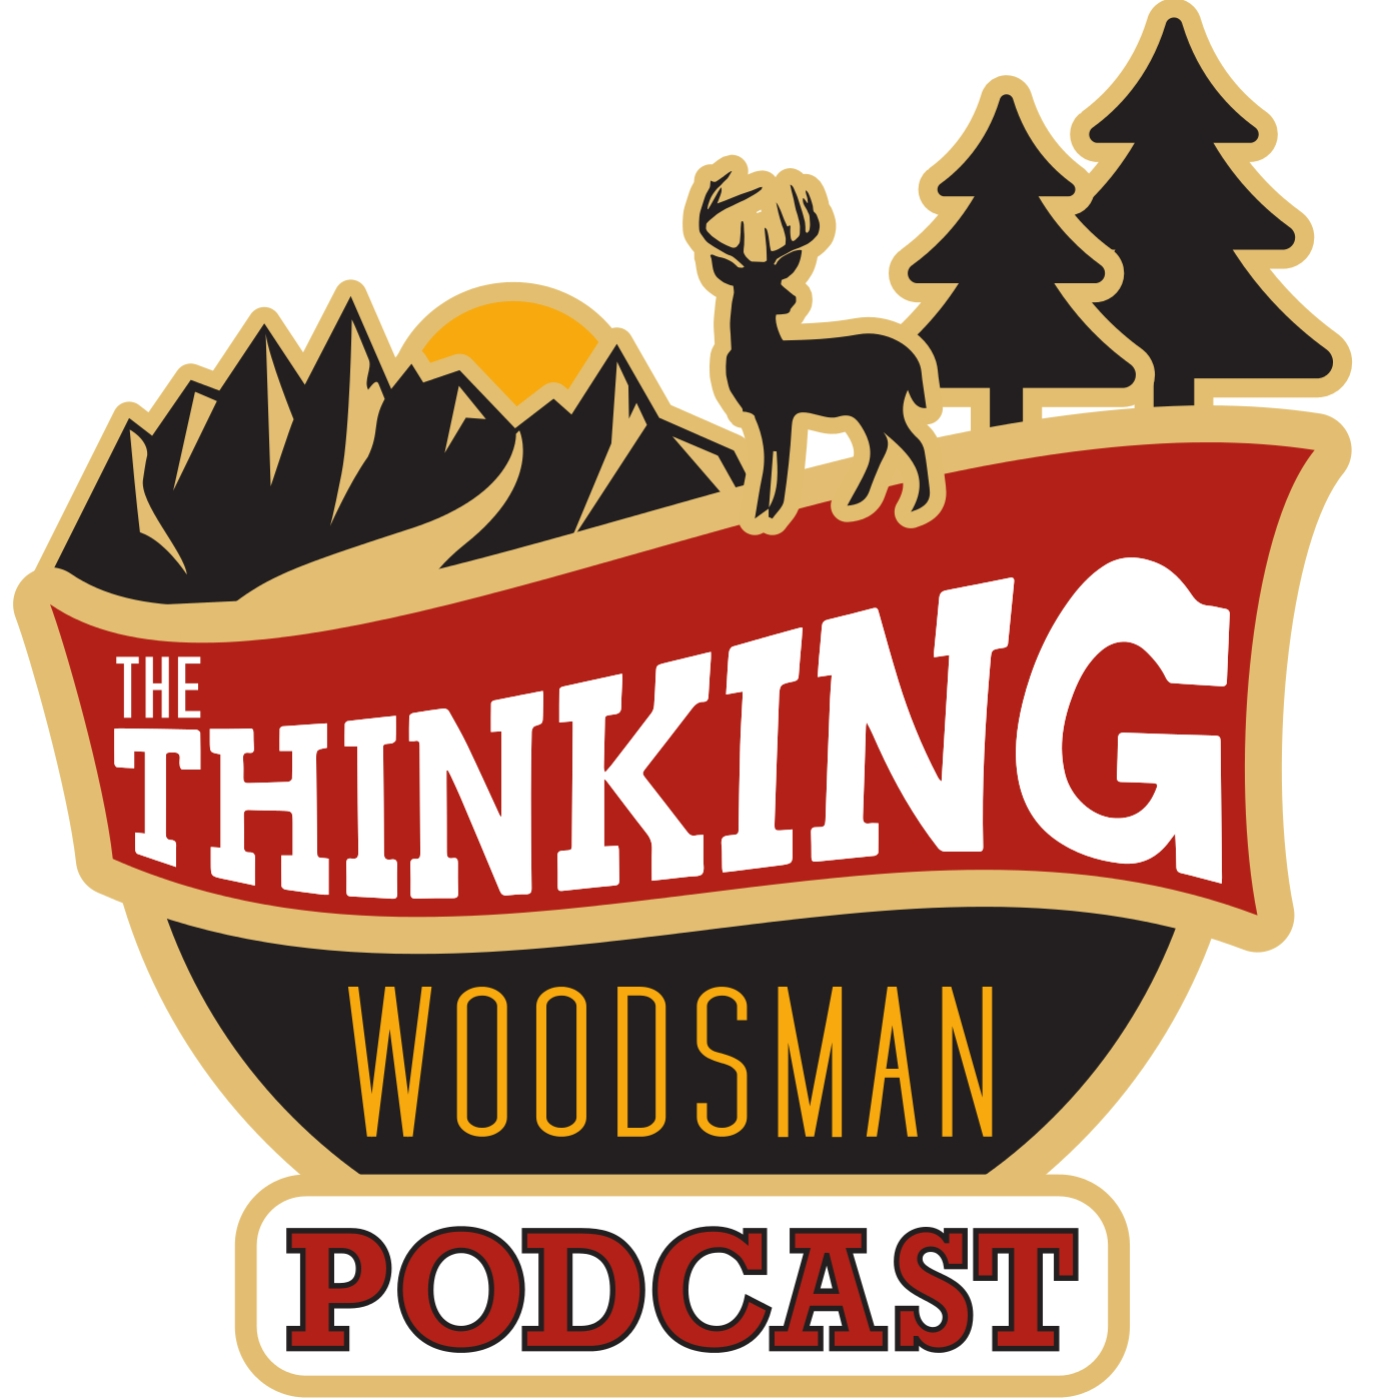 The Thinking Woodsman Podcast